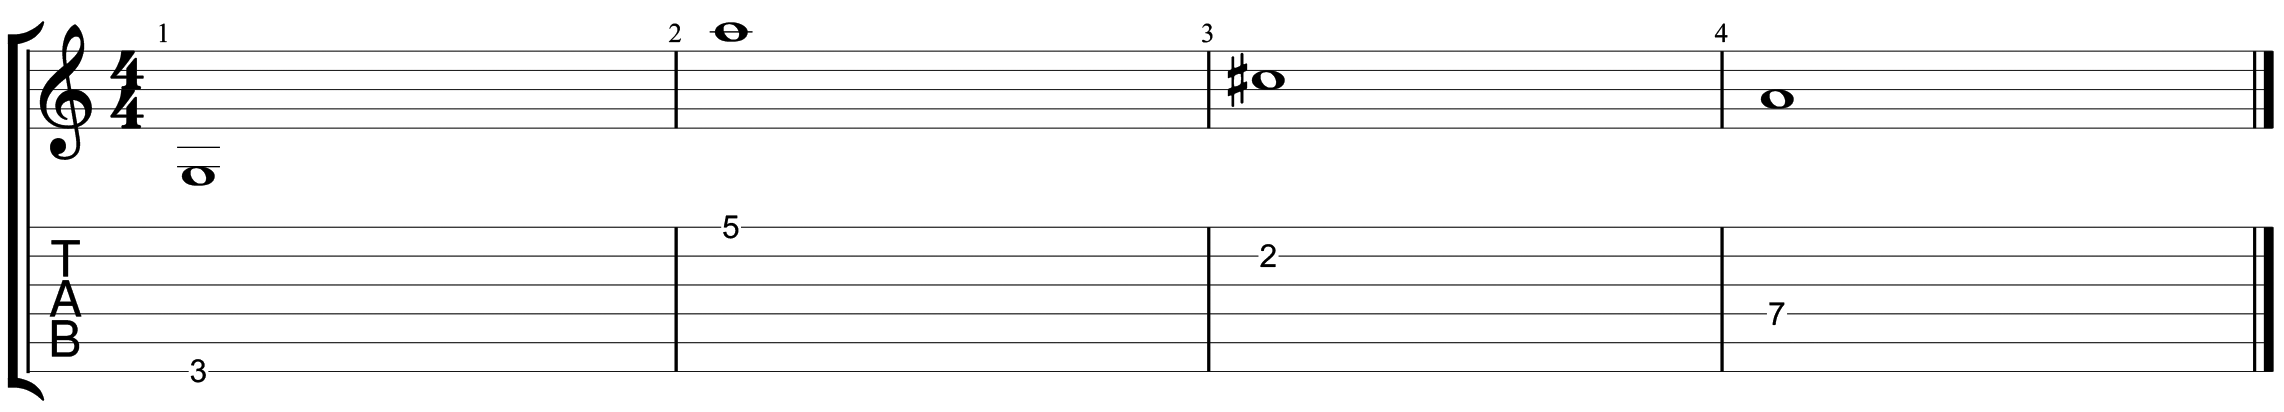 How to read guitar tab 2